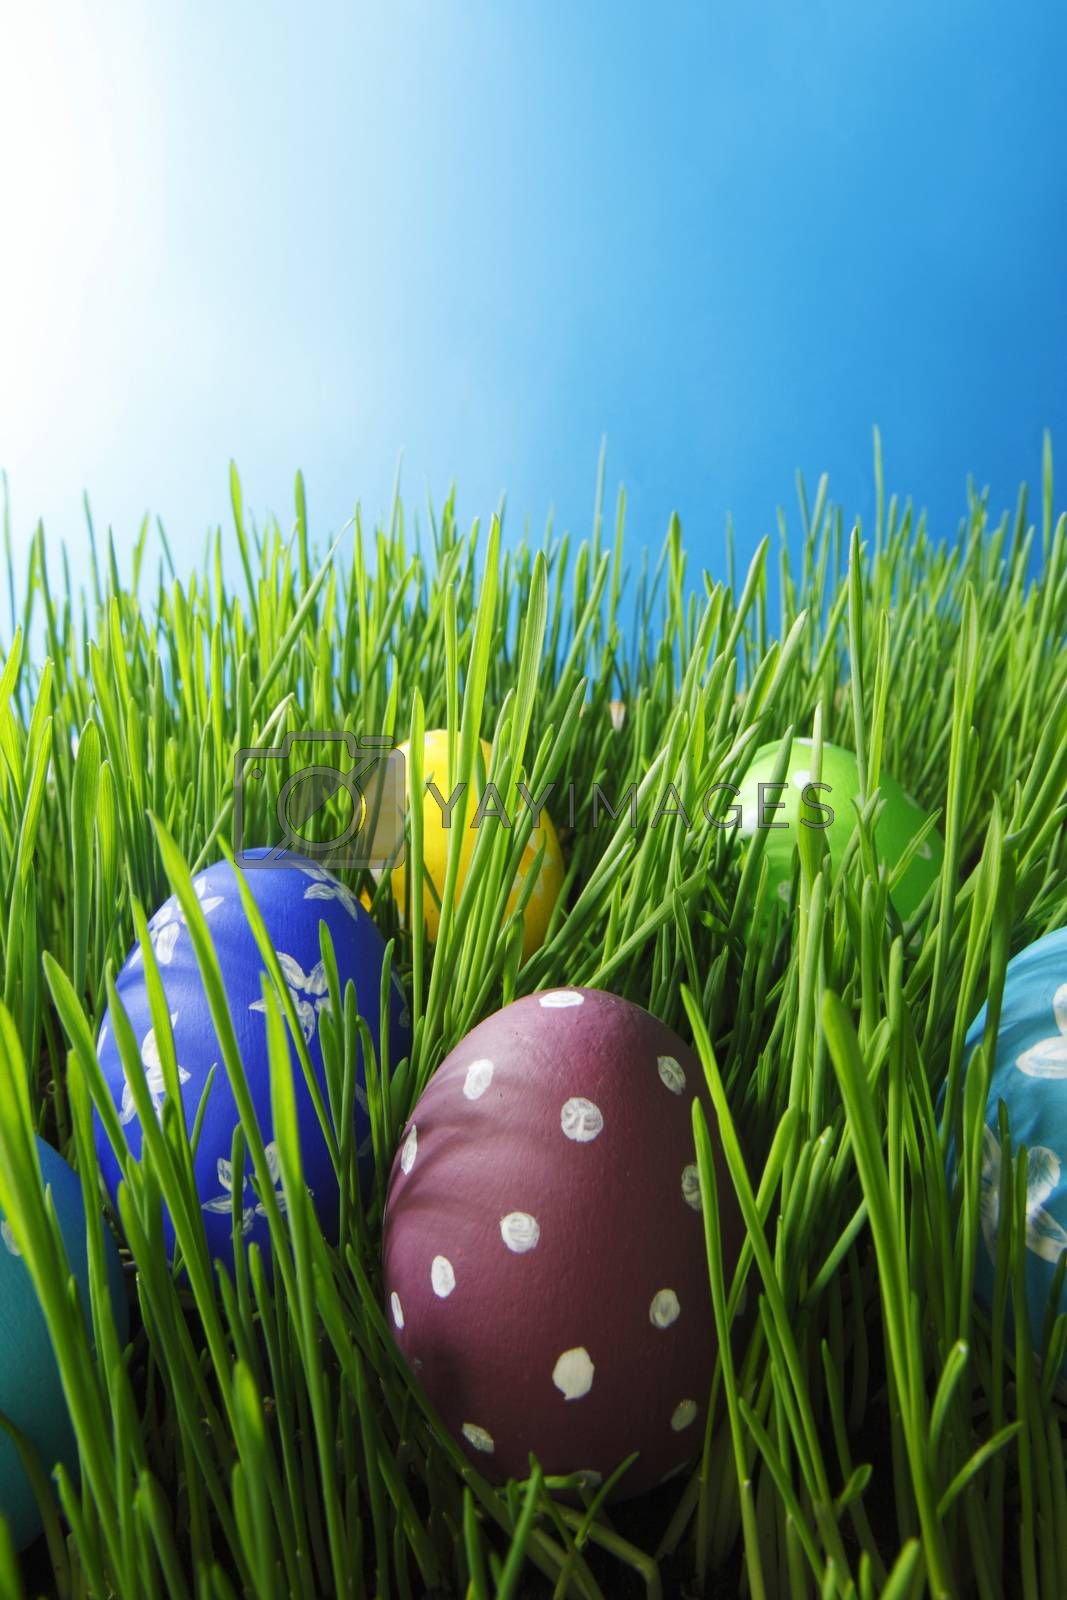 Easter eggs in grass by Yellowj